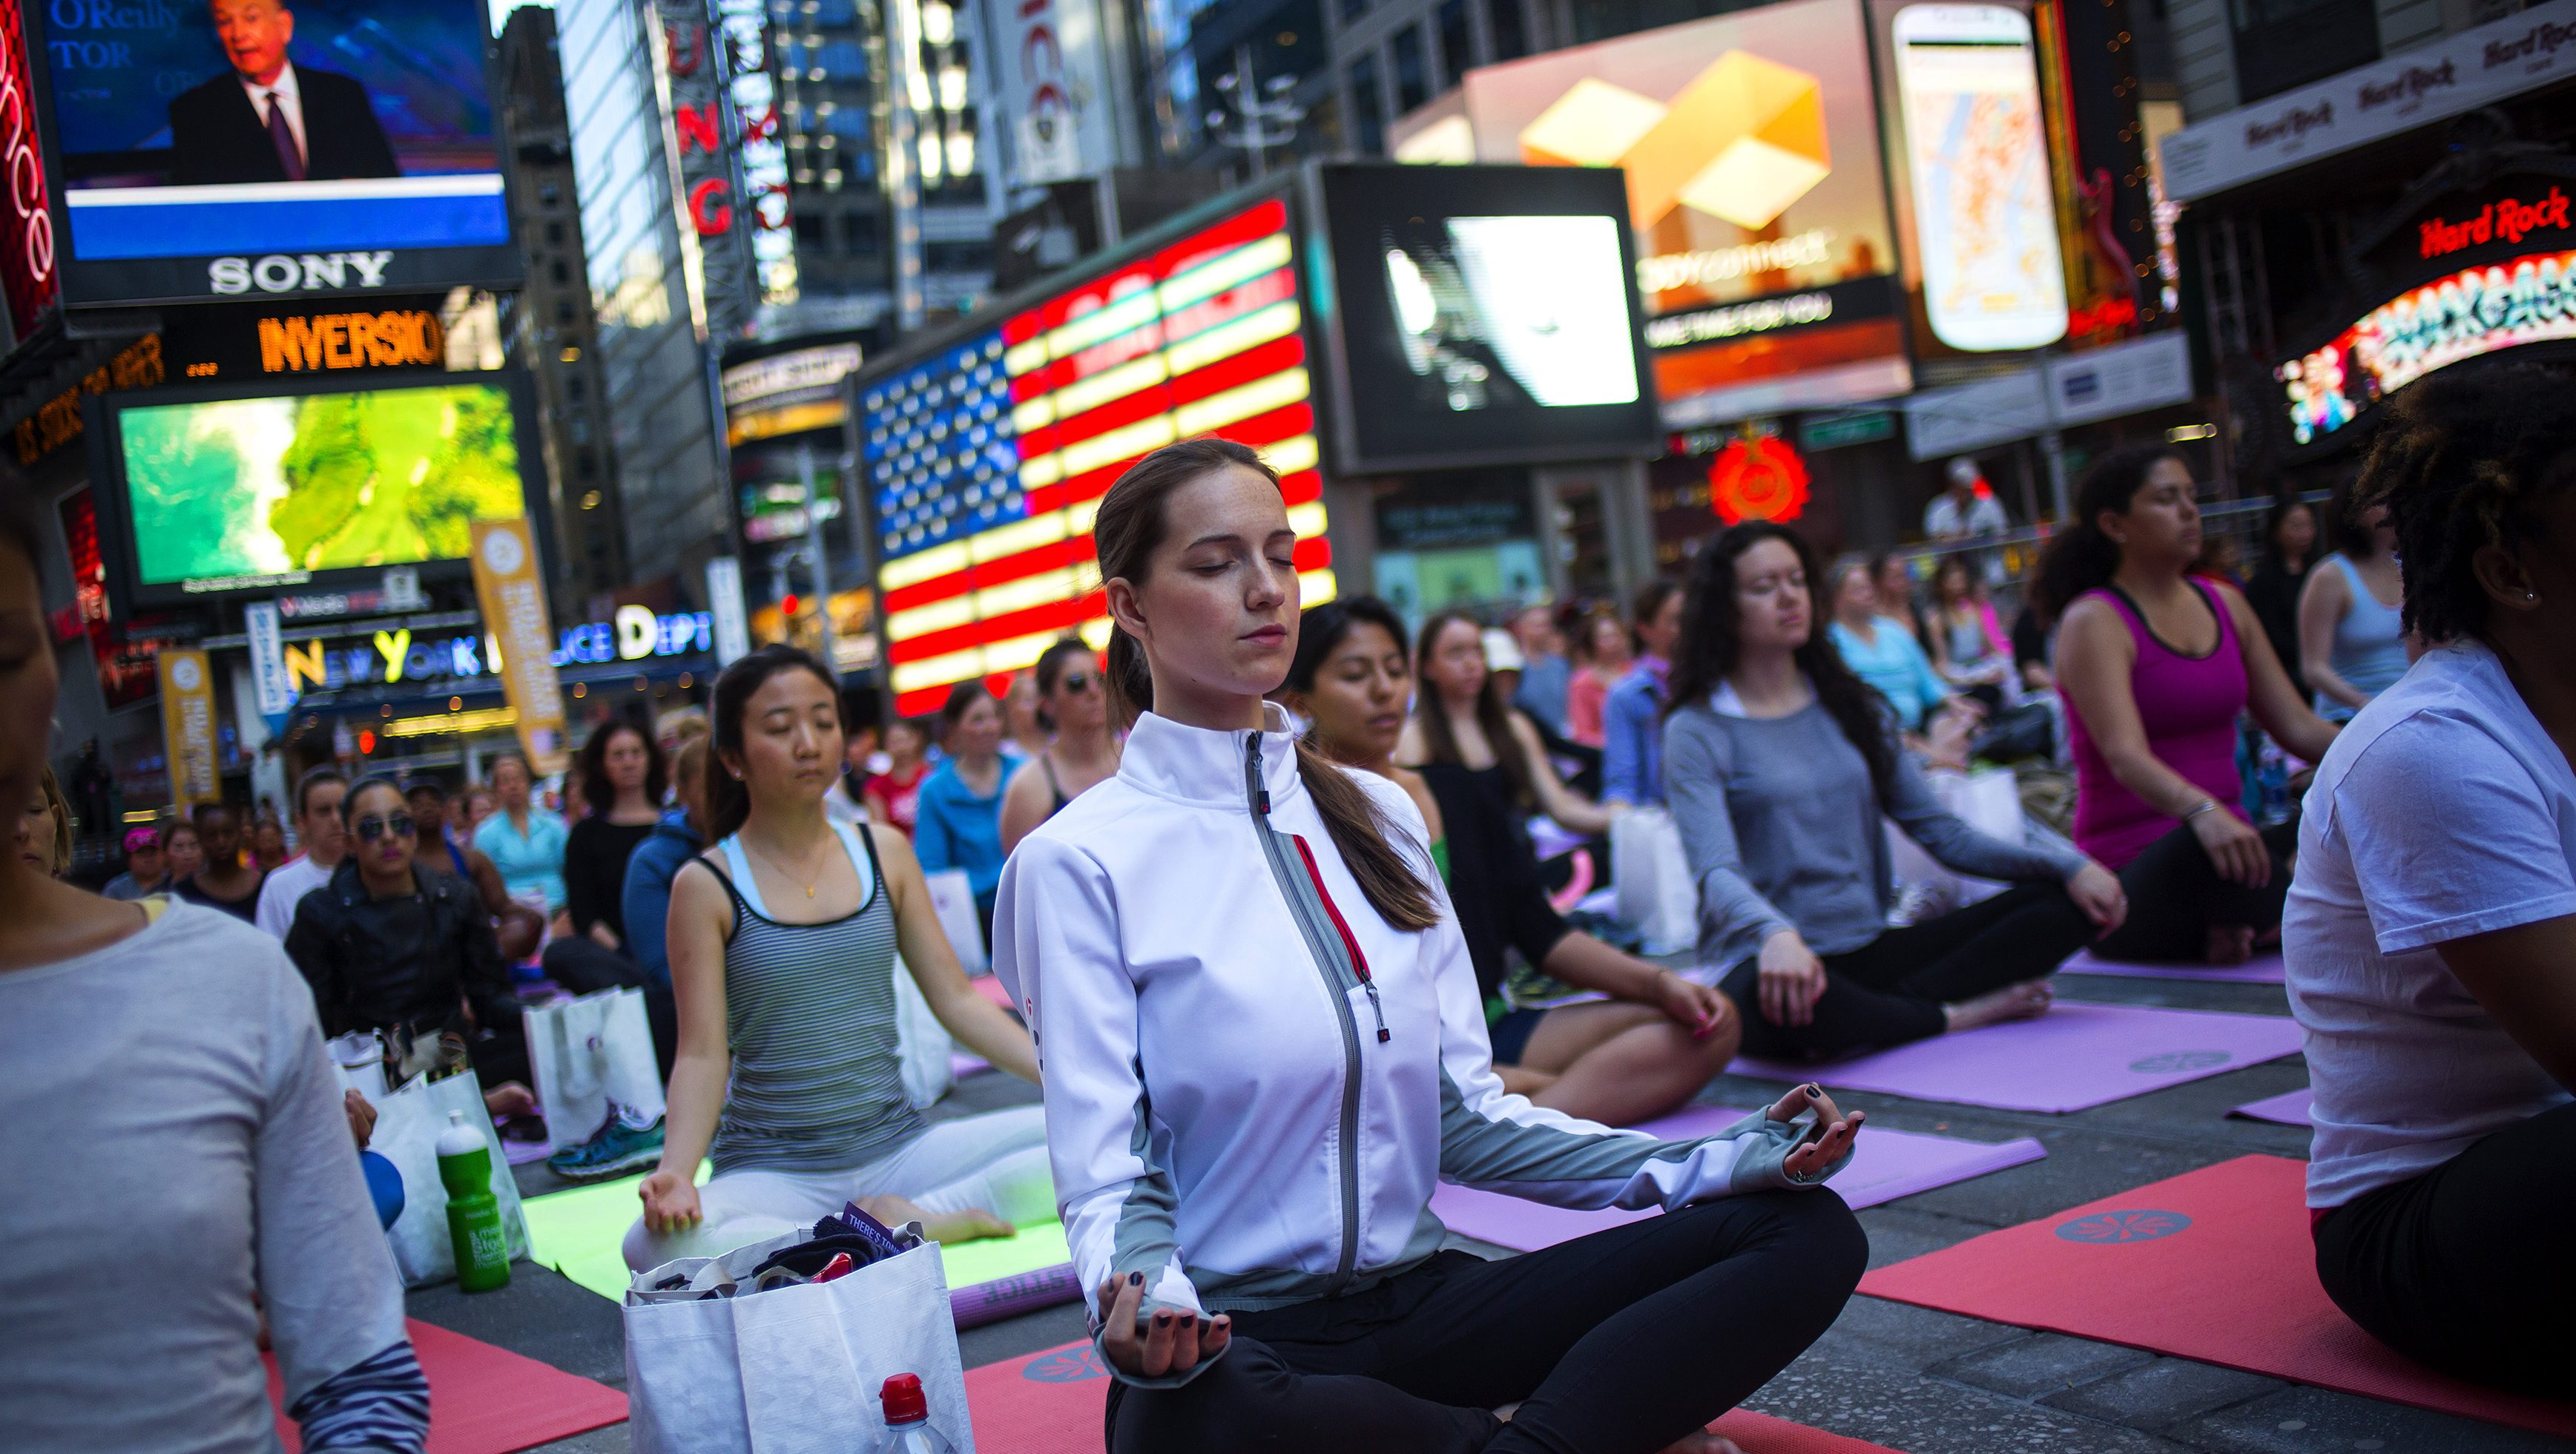 People practice yoga in Times Square as part of a Summer Solstice celebration in New York June 21, 2014.